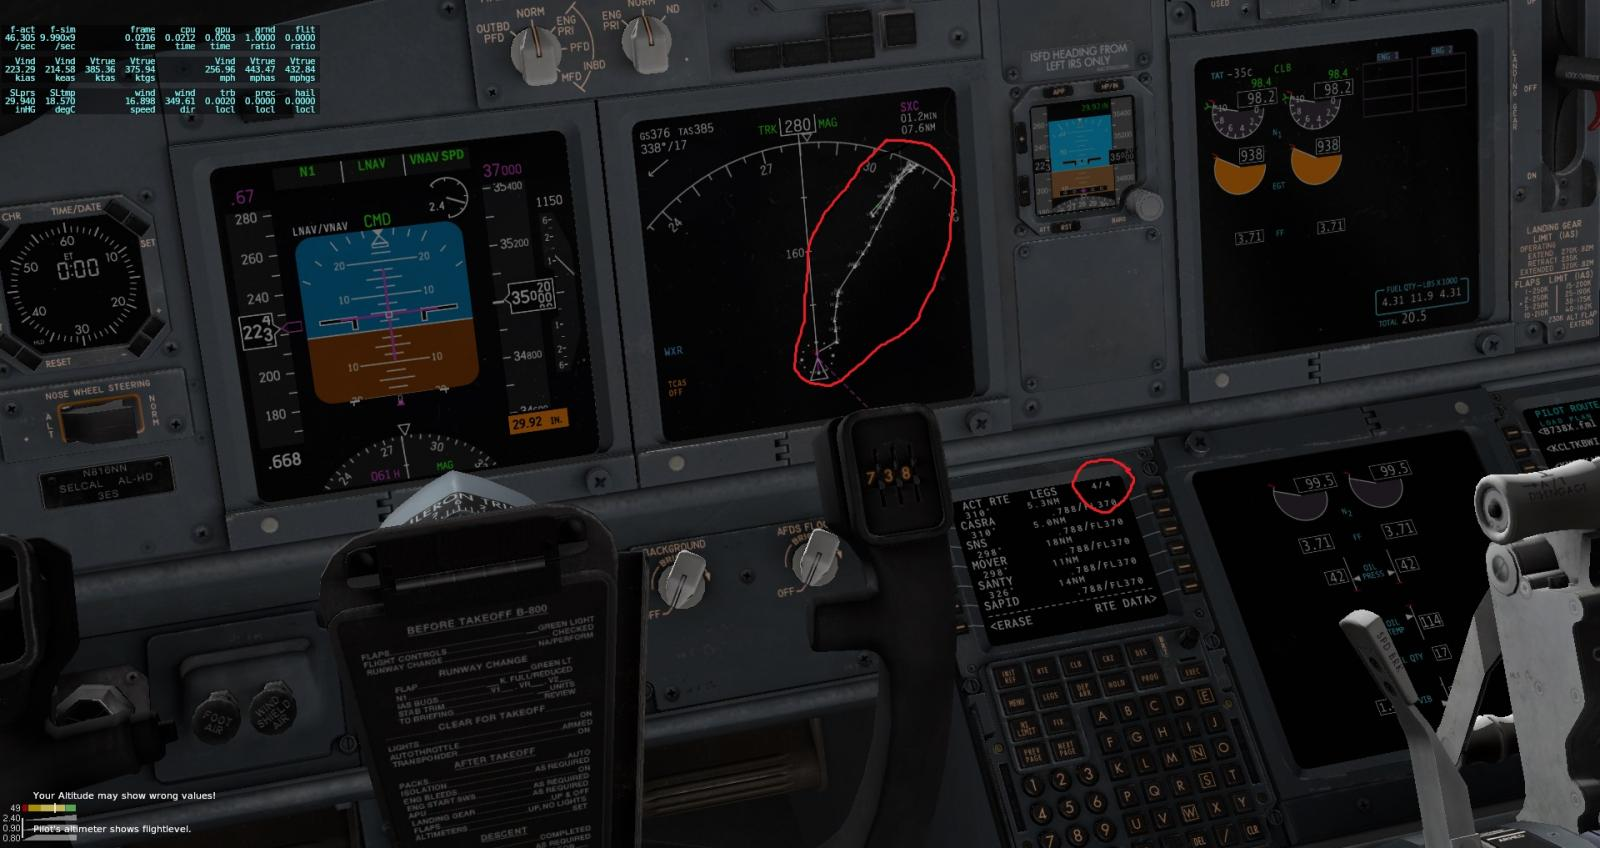 B738-800 modified - Page 192 - ZIBO B738-800 modified - X-Plane Org